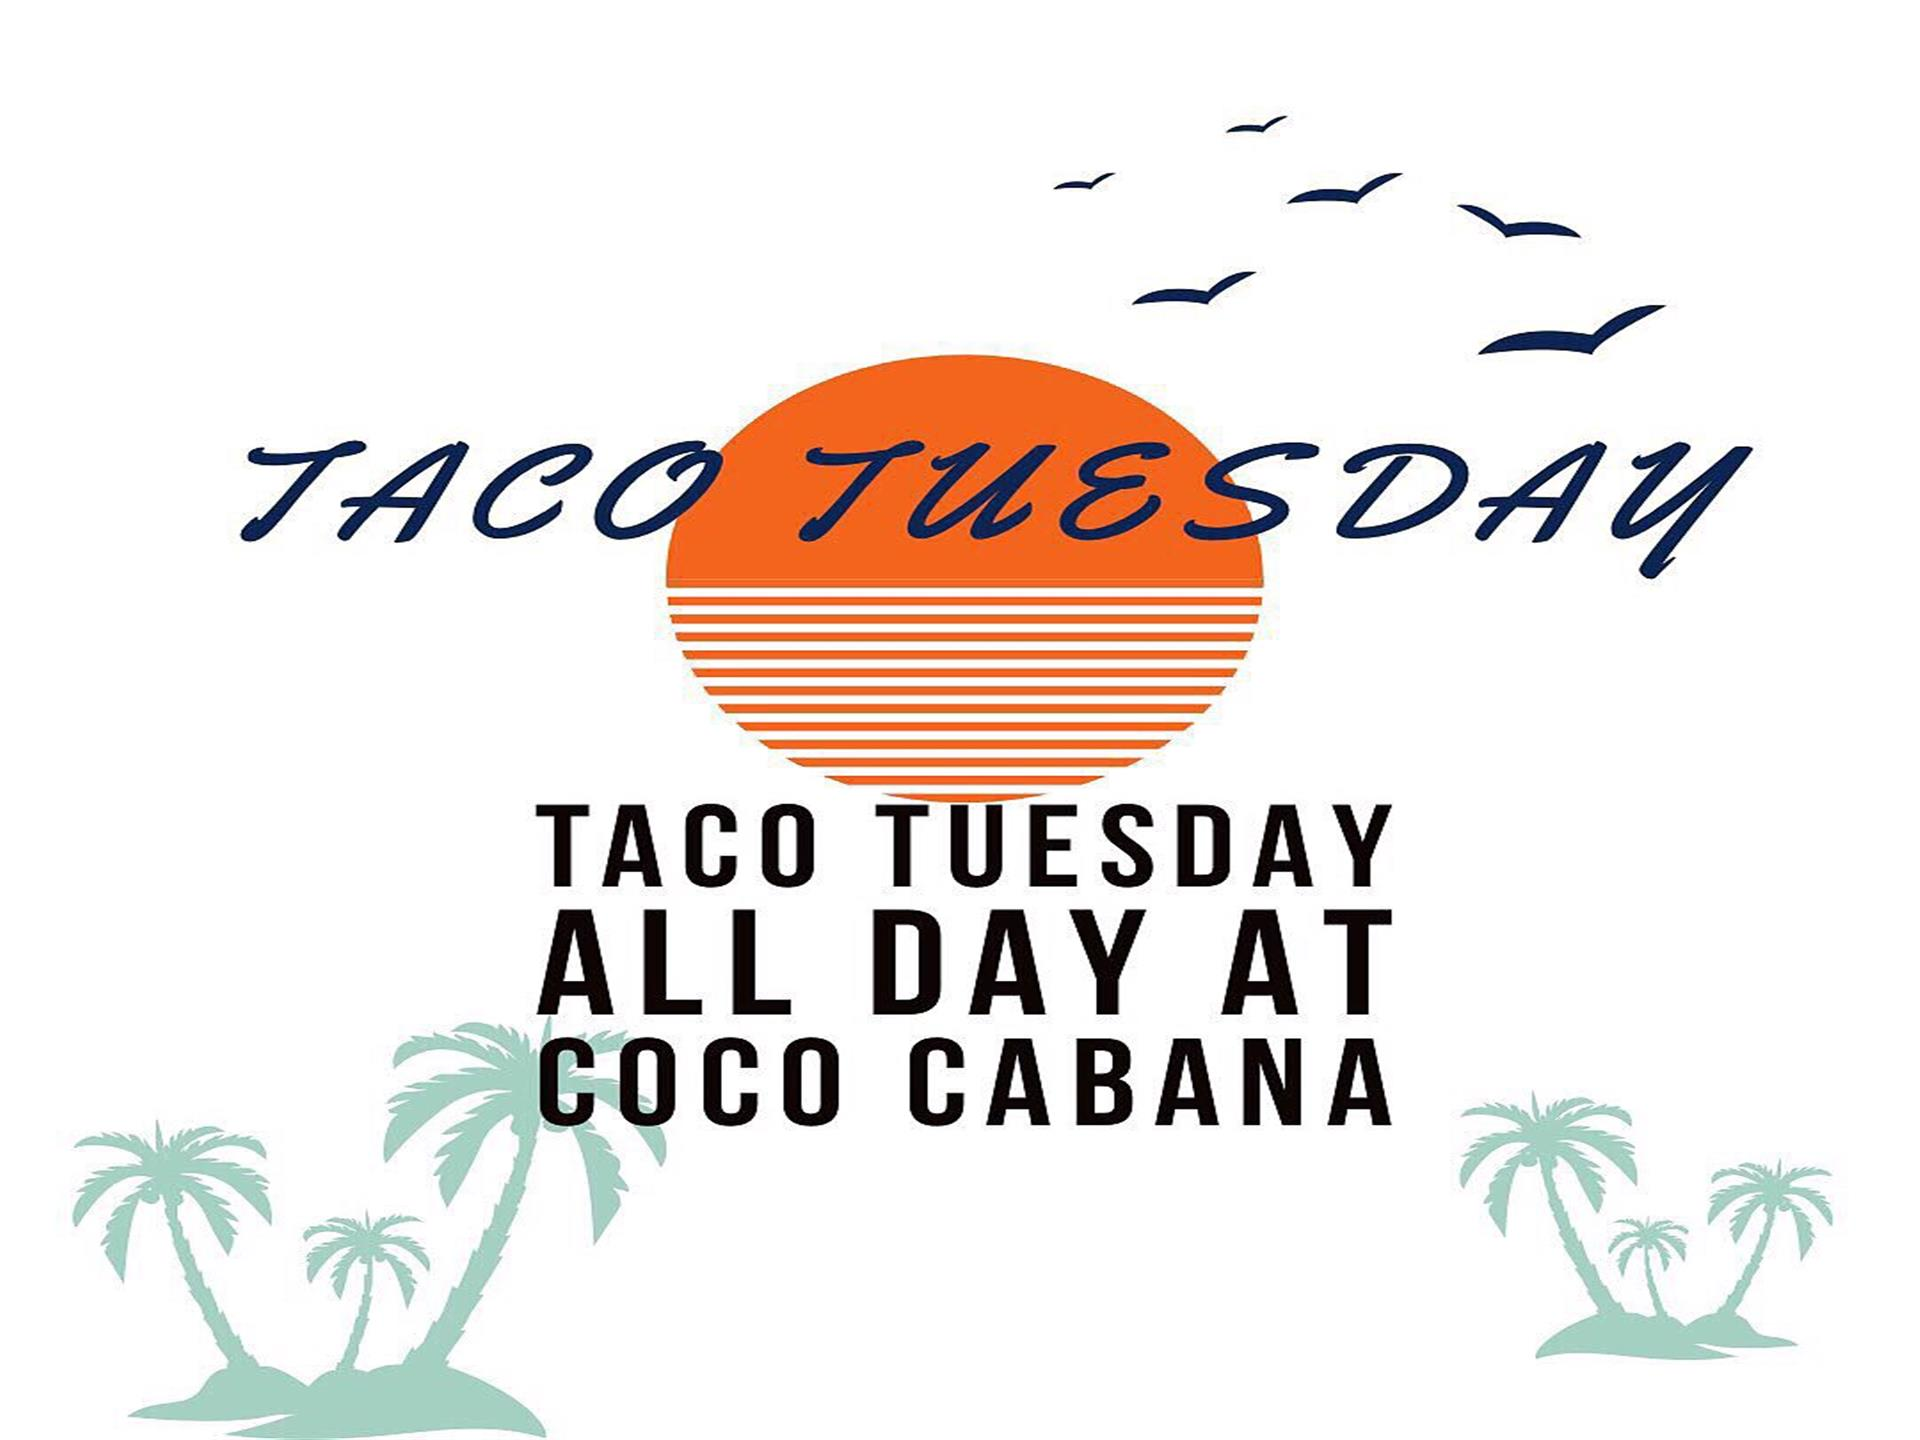 Taco Tuesday, all day at Coco Cabana